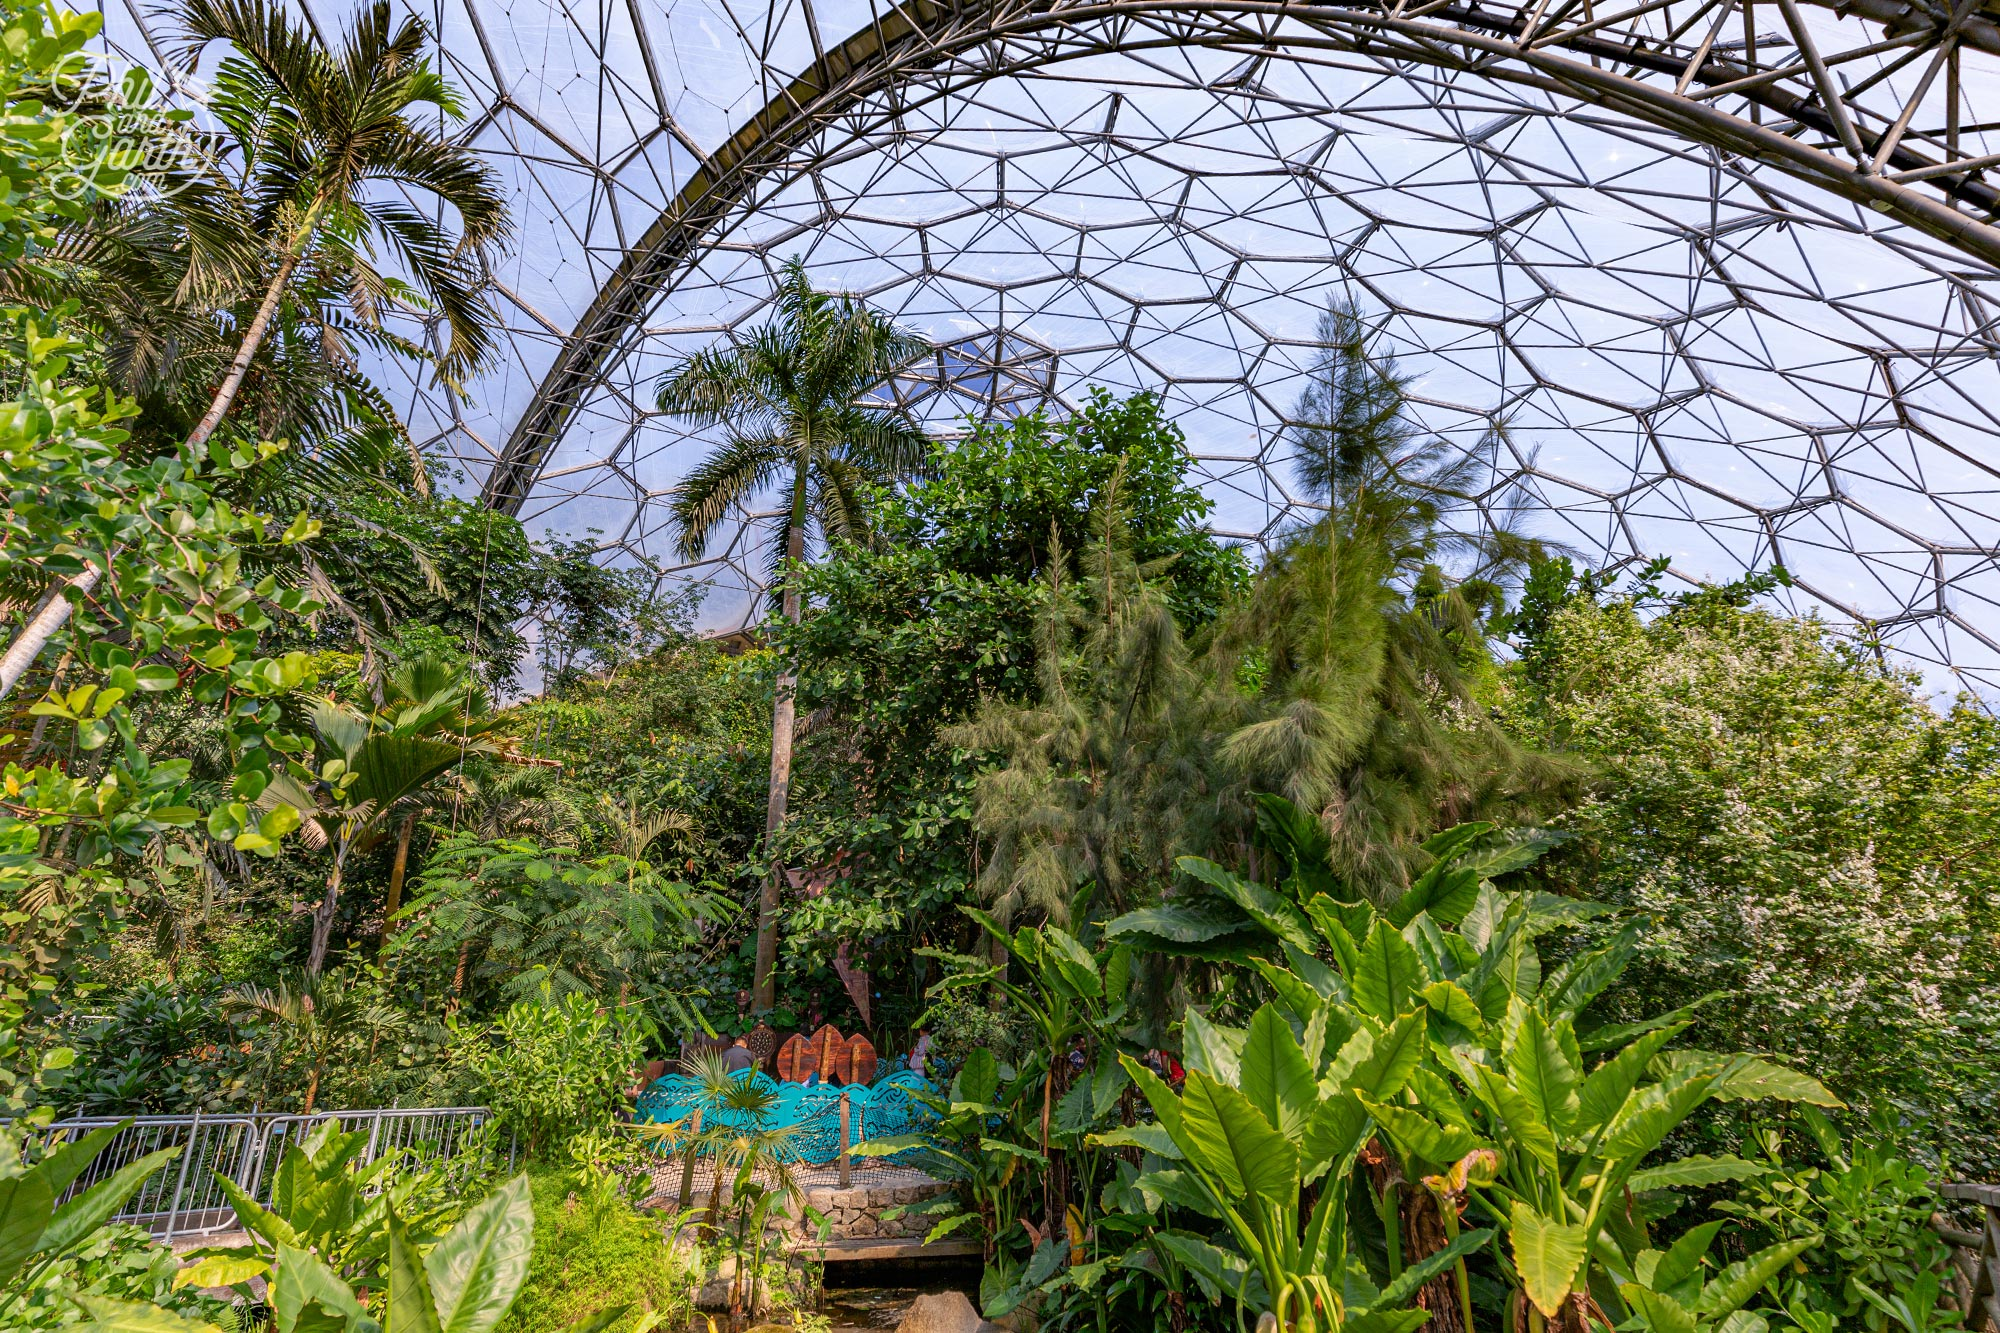 Inside the Rainforest Biome which is the world's largest indoor rainforest